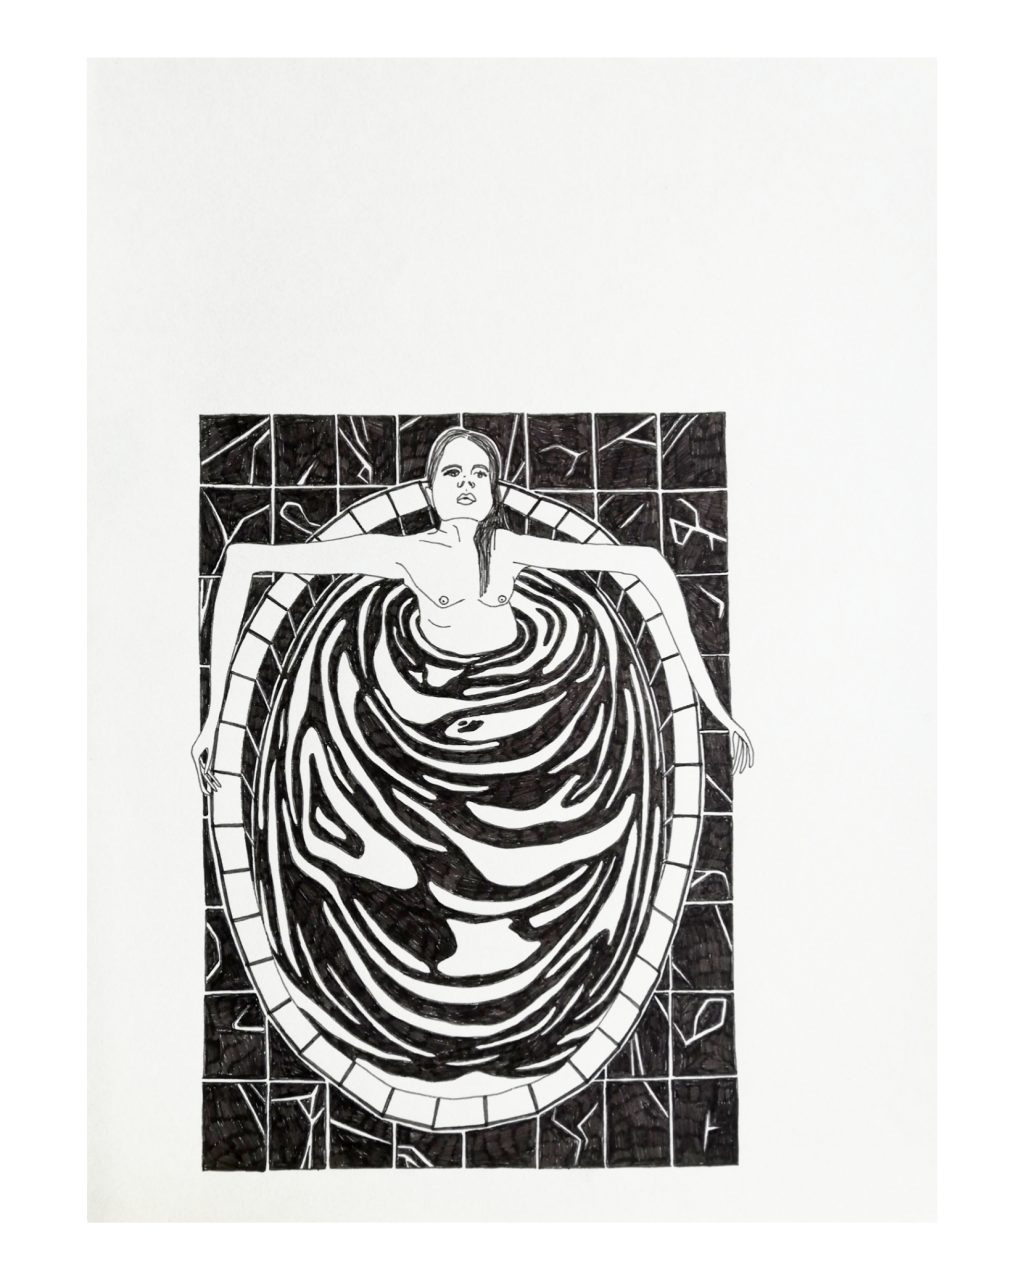 THE BATH 28 x 36 cm, fineliner on paper, 2017.